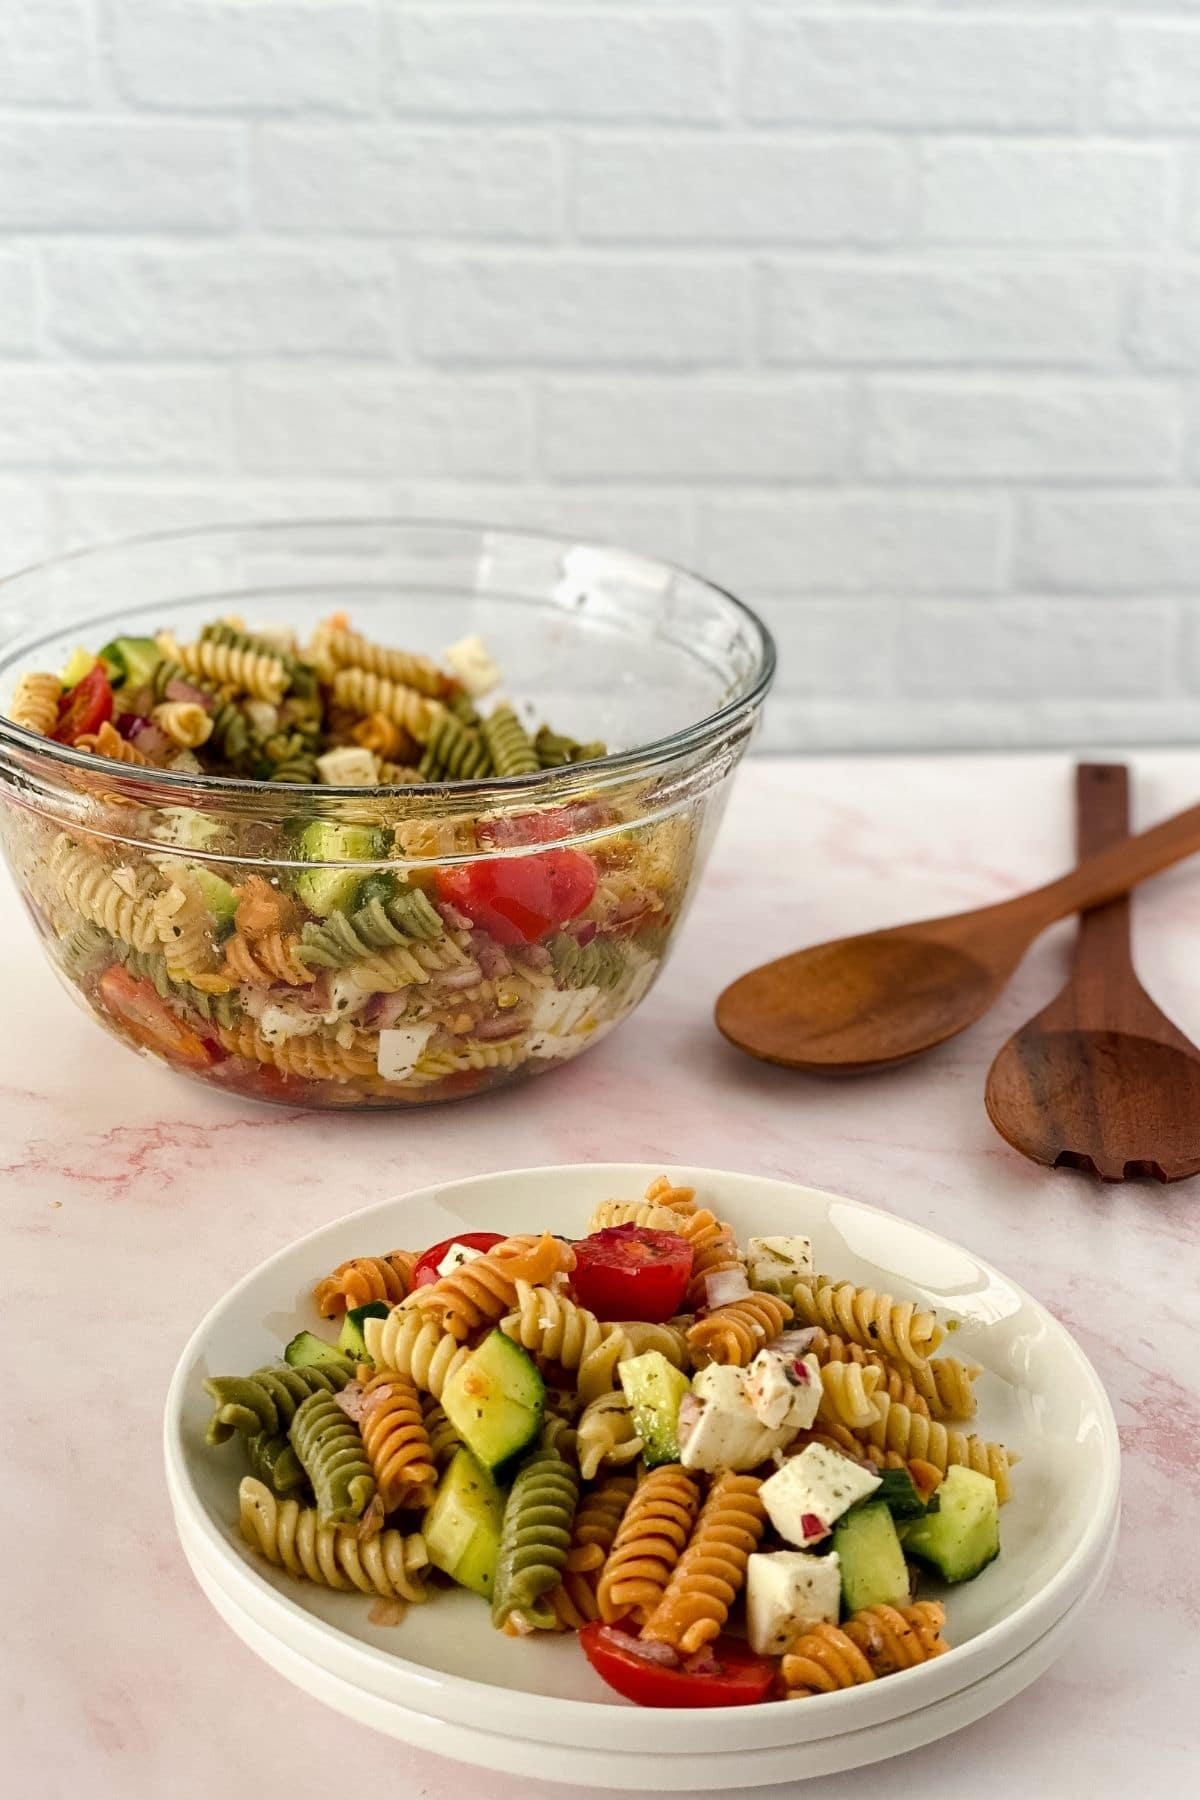 White shallow bowl of pasta salad on pink table in front of large glass bowl of salad